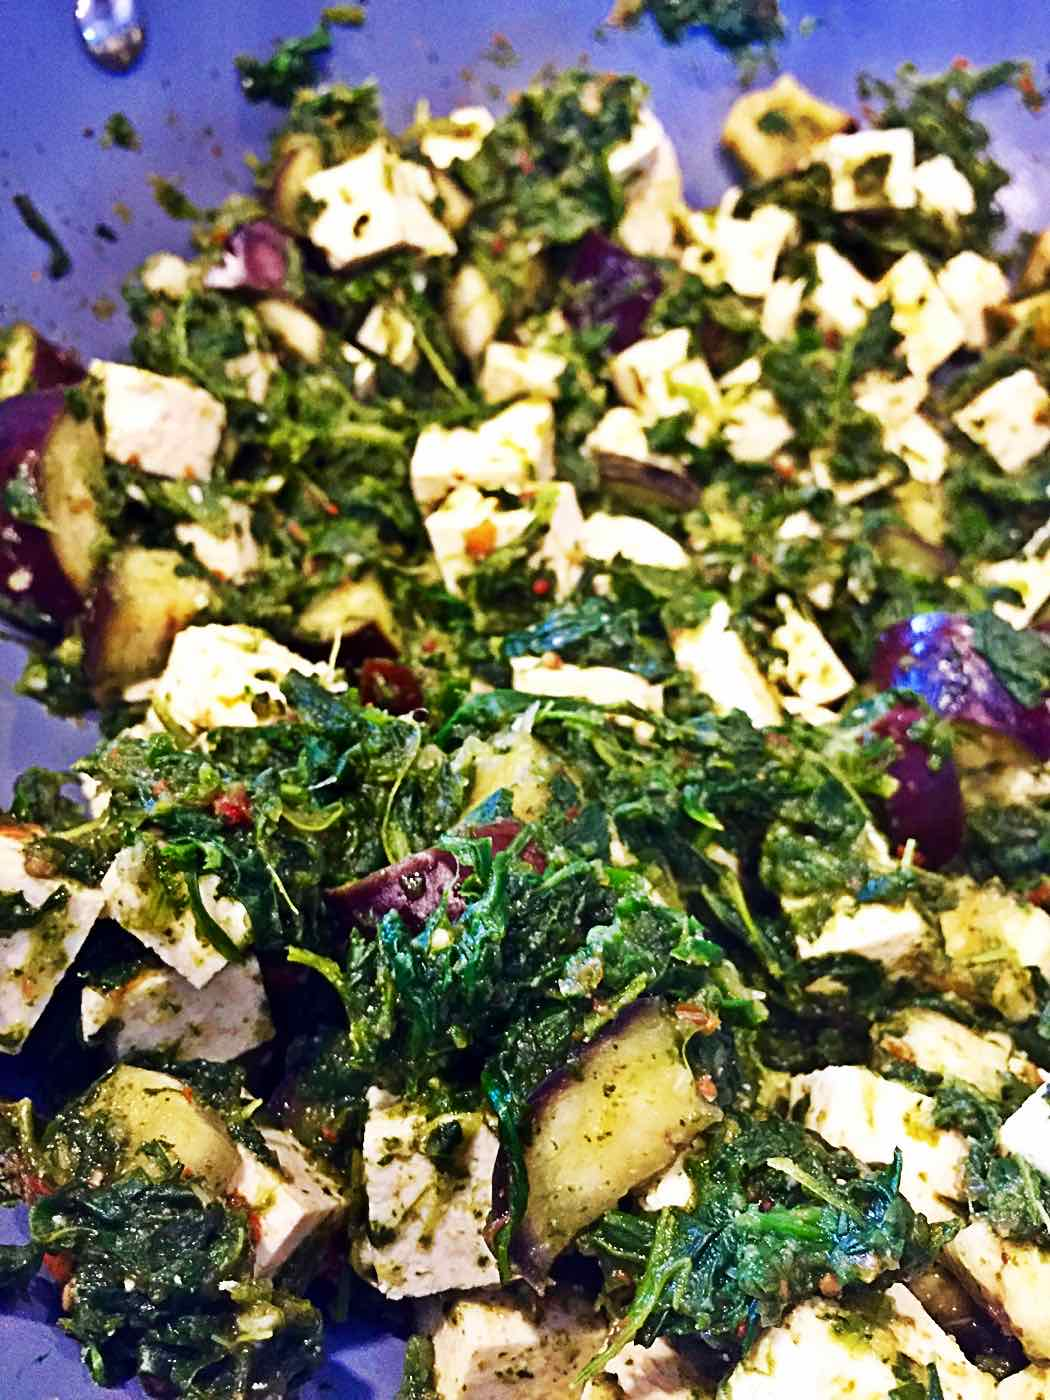 Image of Healthy Vegan Indian Palak Paneer with Spinach Eggplant and Tofu from VeganEnvy.com